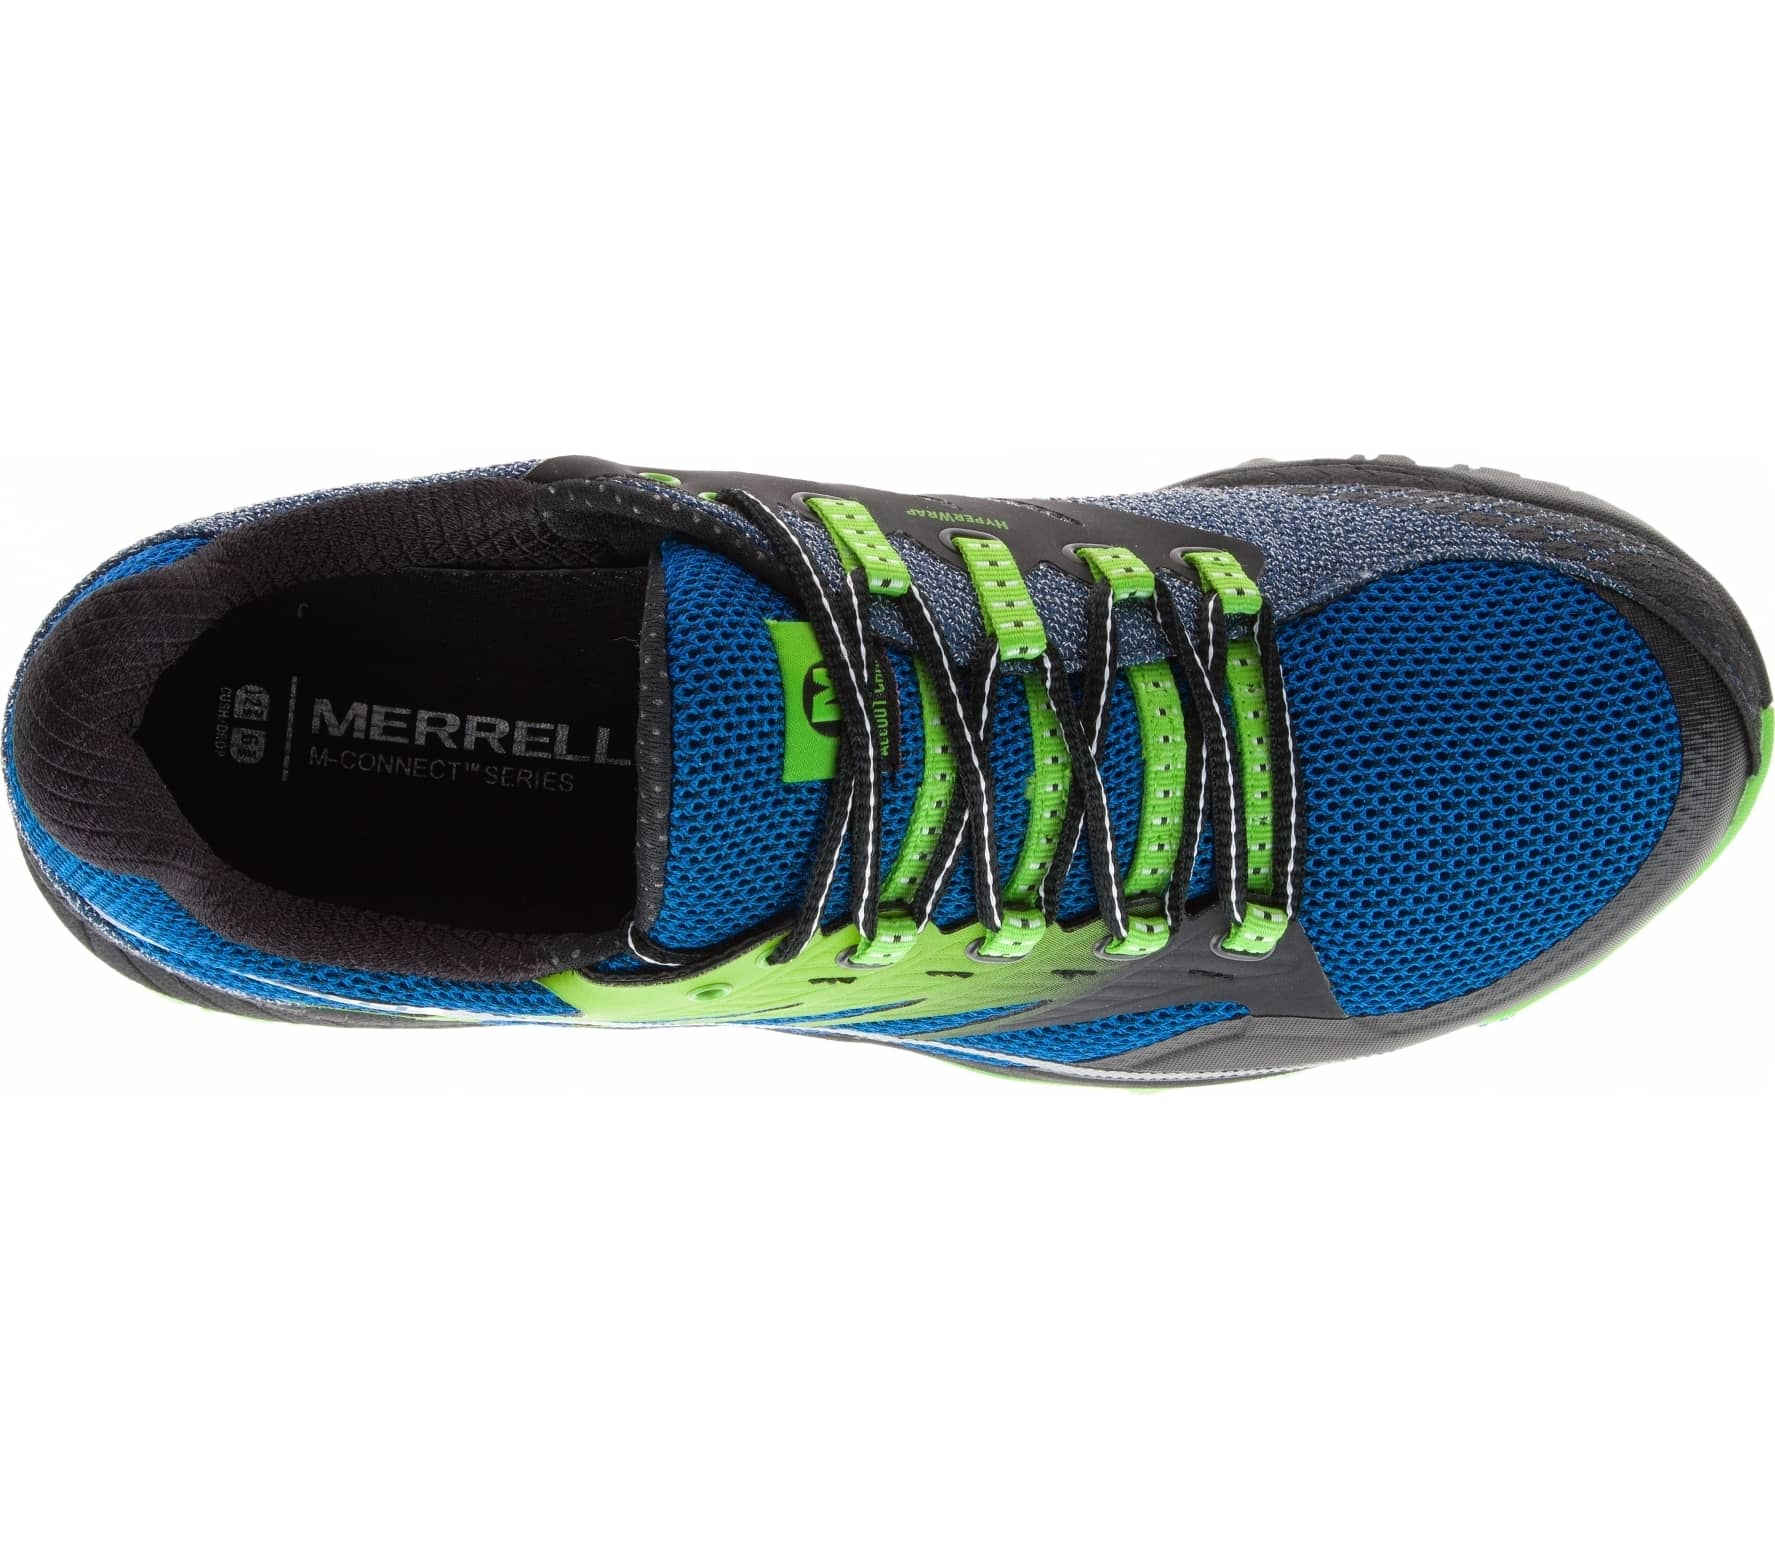 Blau Schuh Merrell All Out Charge Herren Mountain Running Schuh